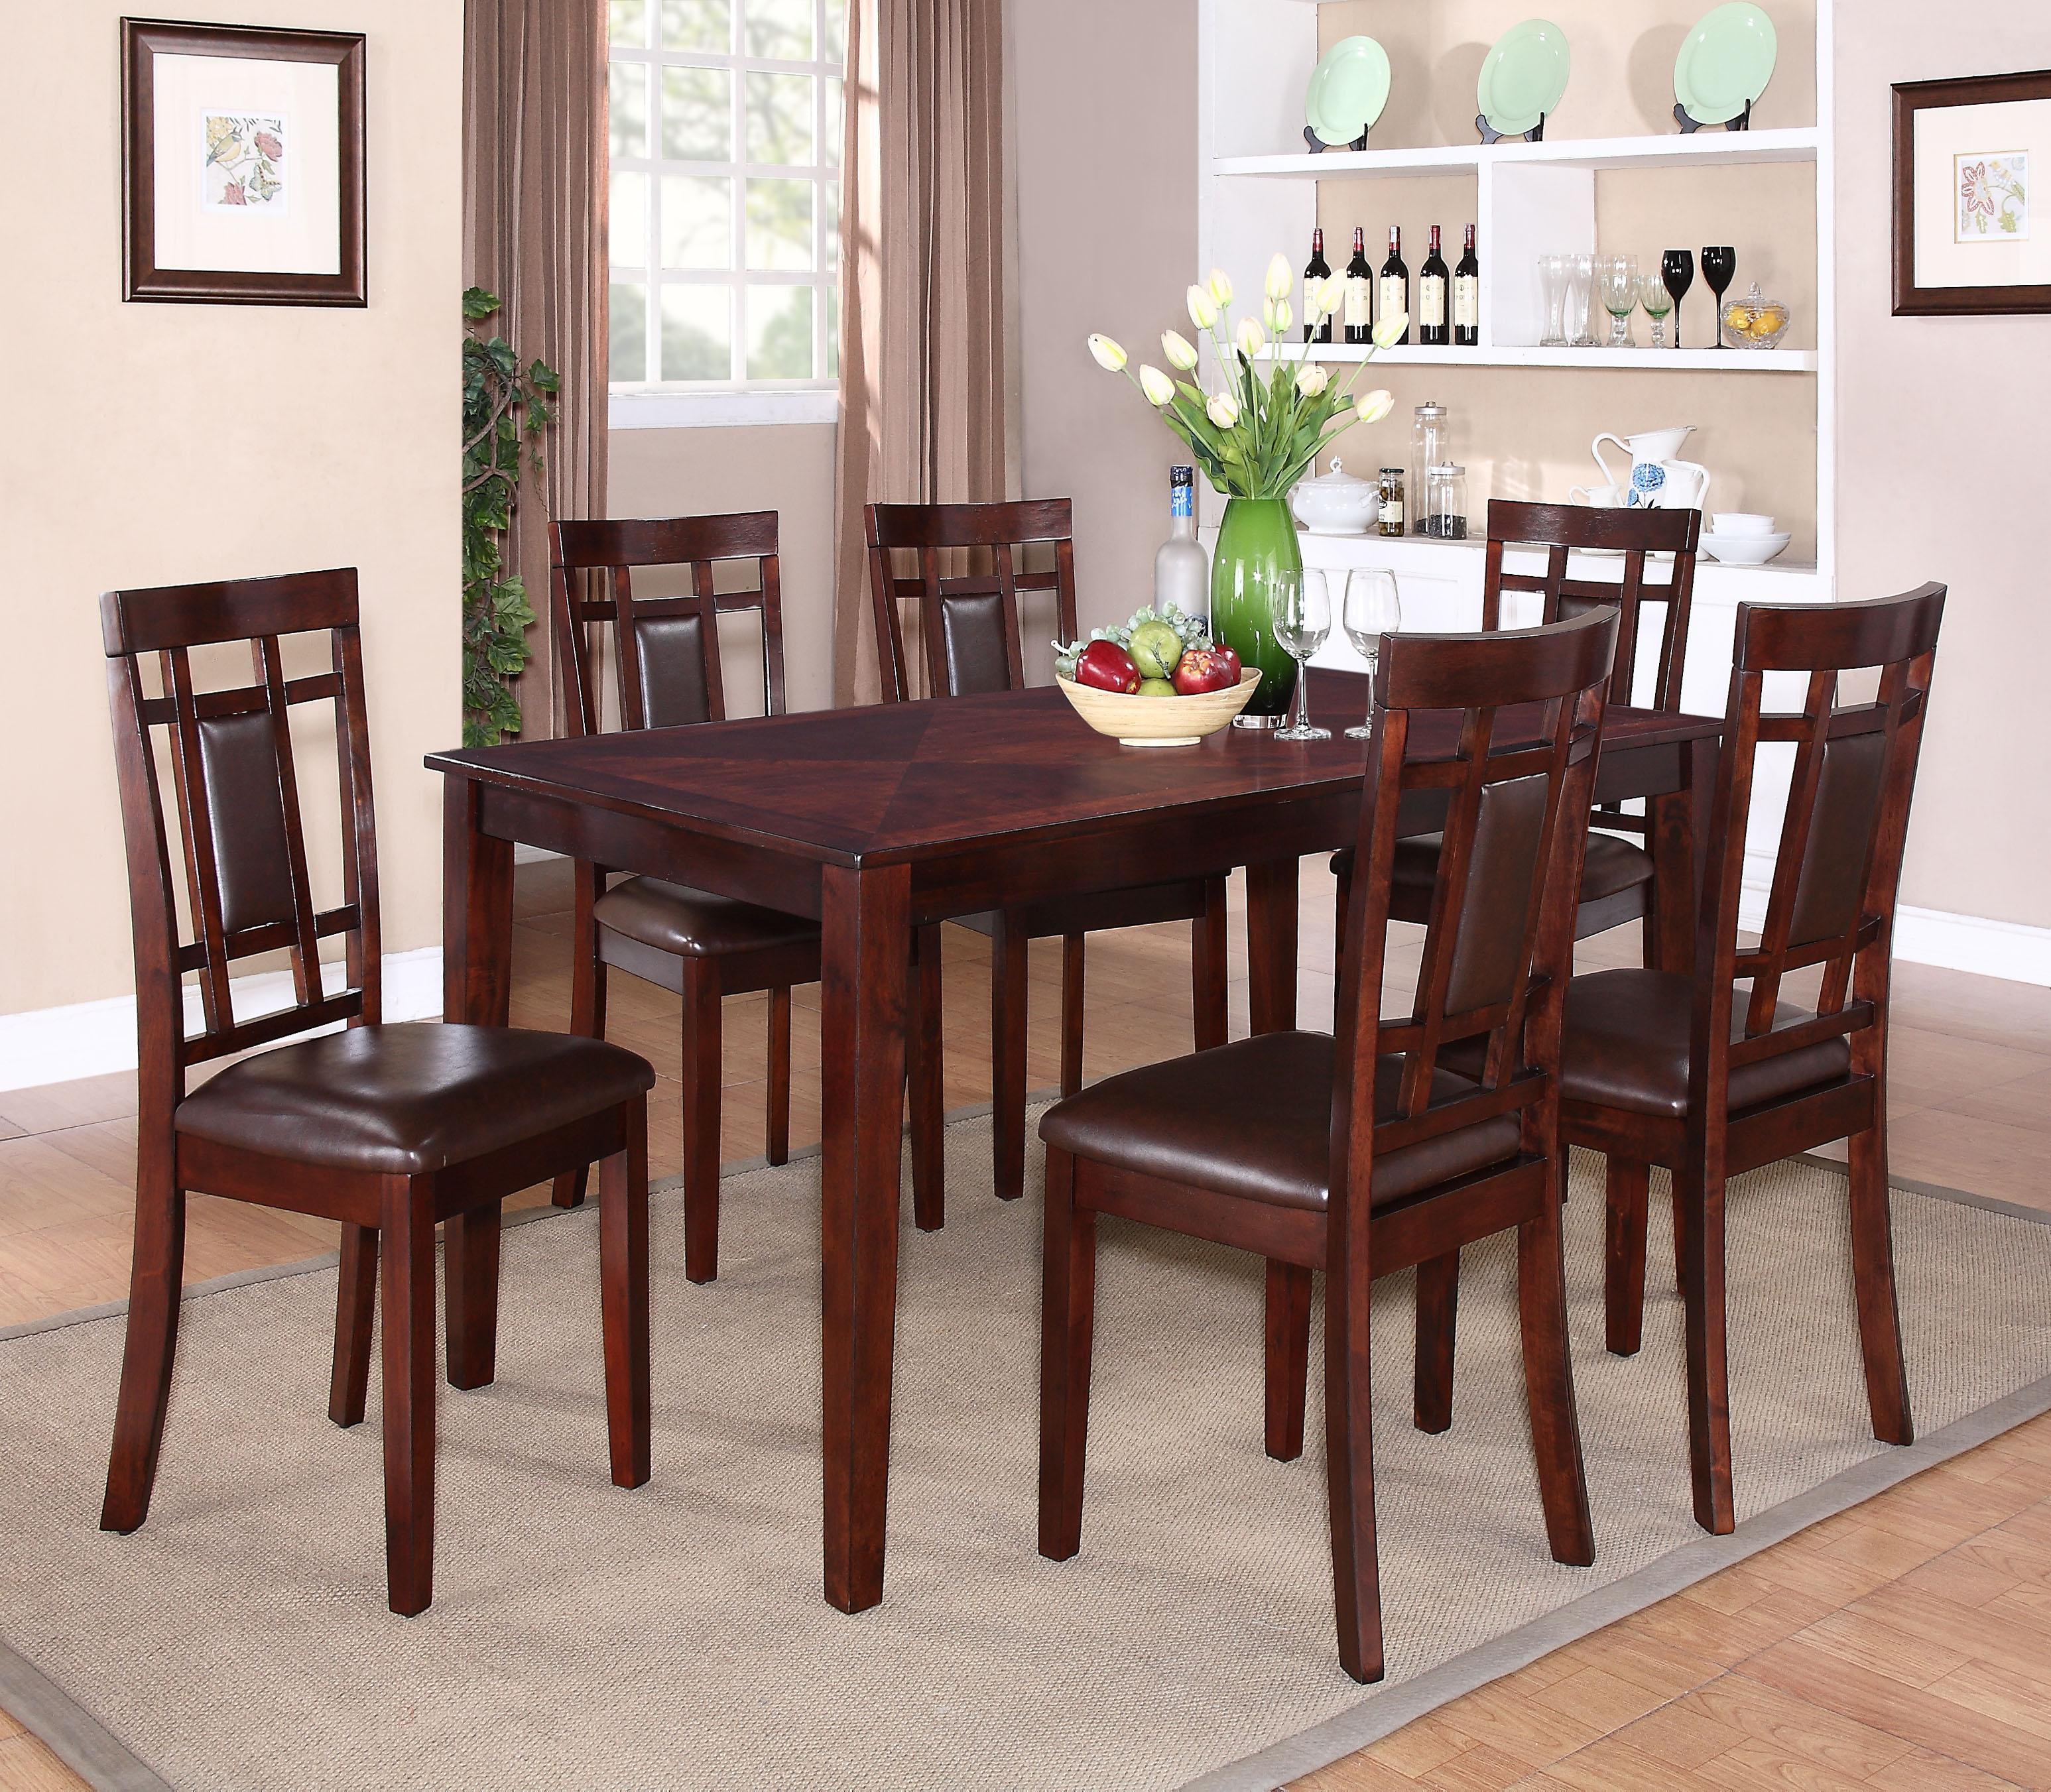 Standard furniture westlake 17282 7 piece table chair set great american home store dining Grand home furniture outlet westlake